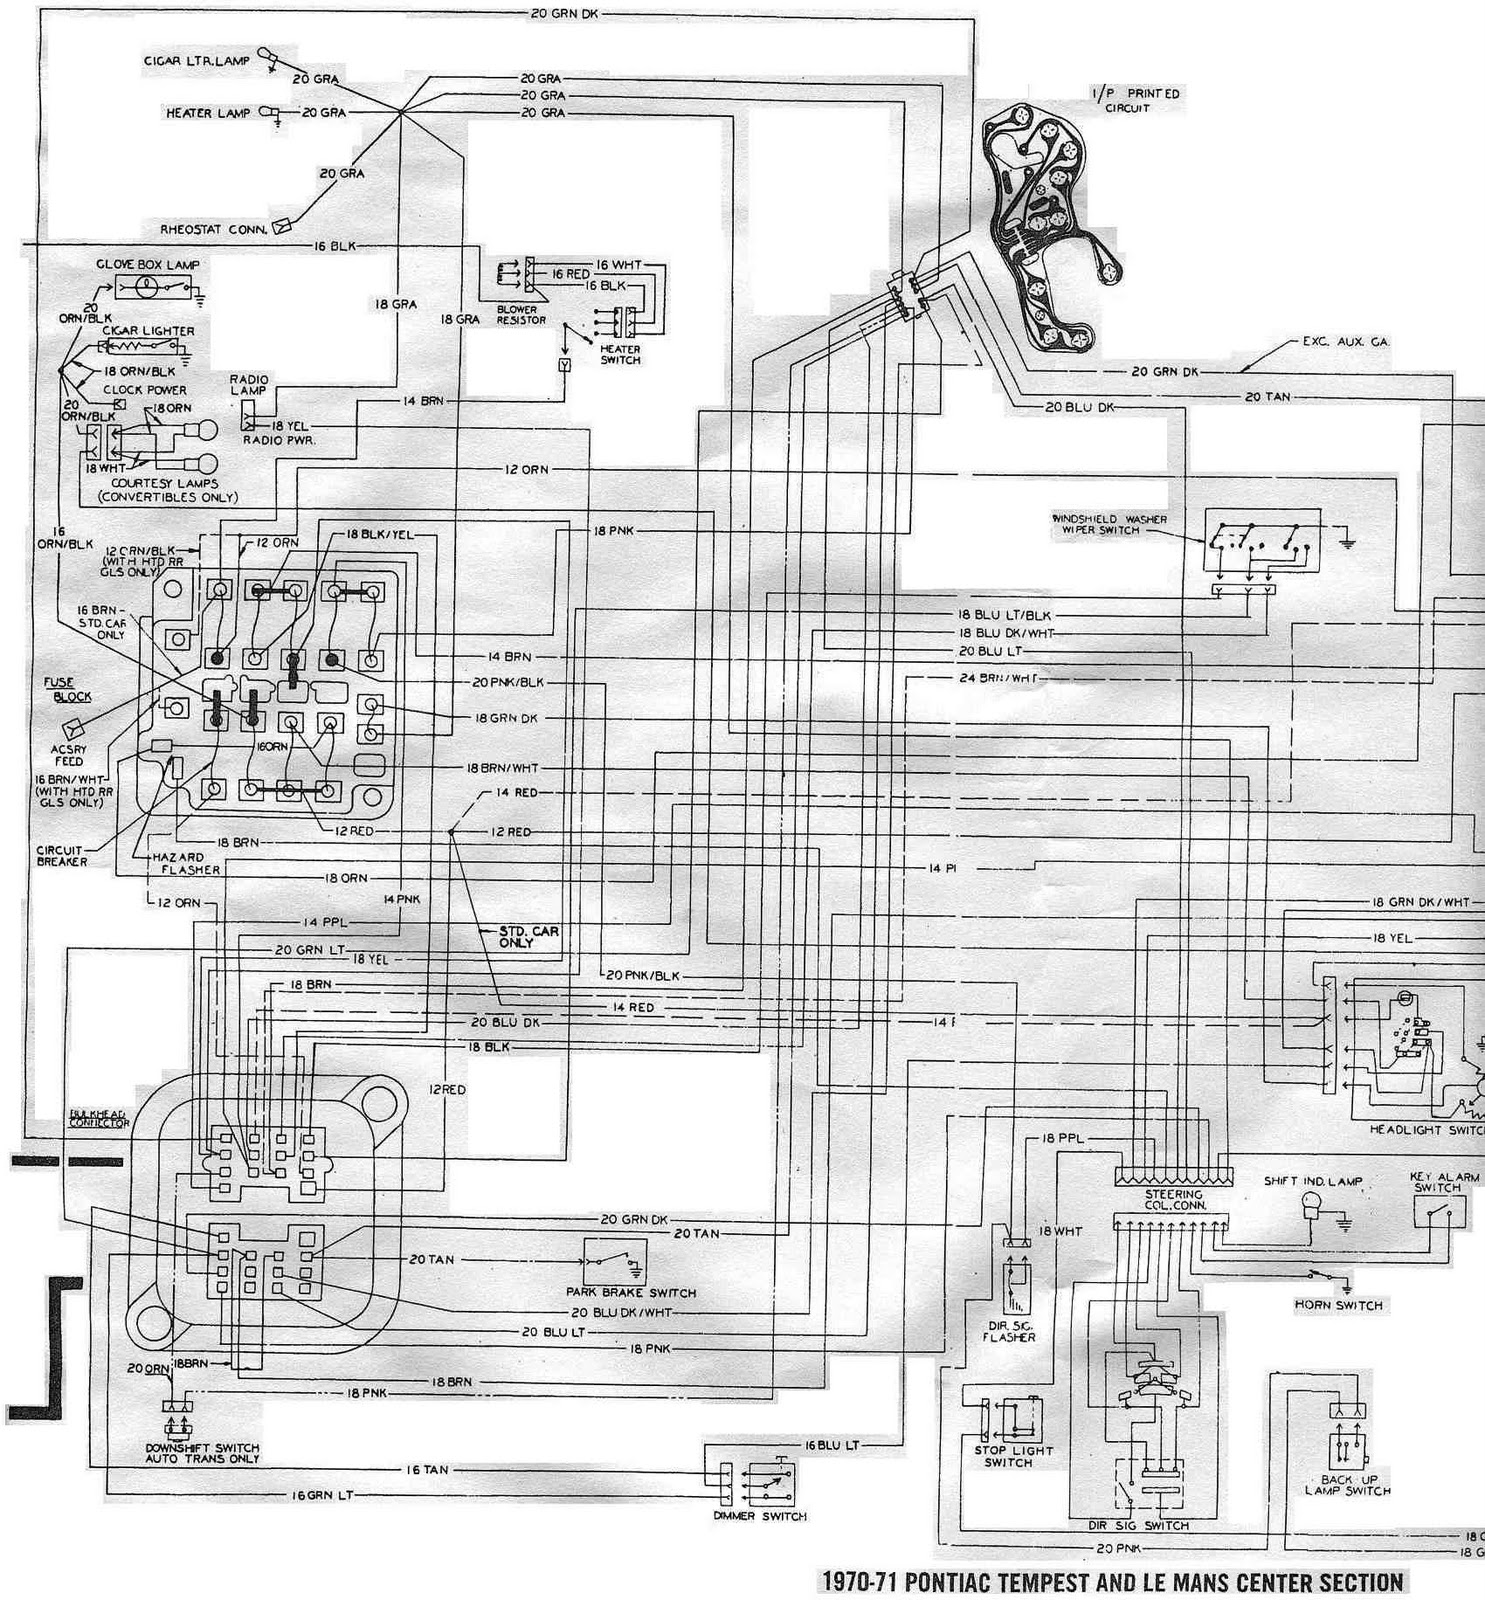 Wiring Diagram 1970 Pontiac Lemans Library 1965 Tempest And 1971 Center Section